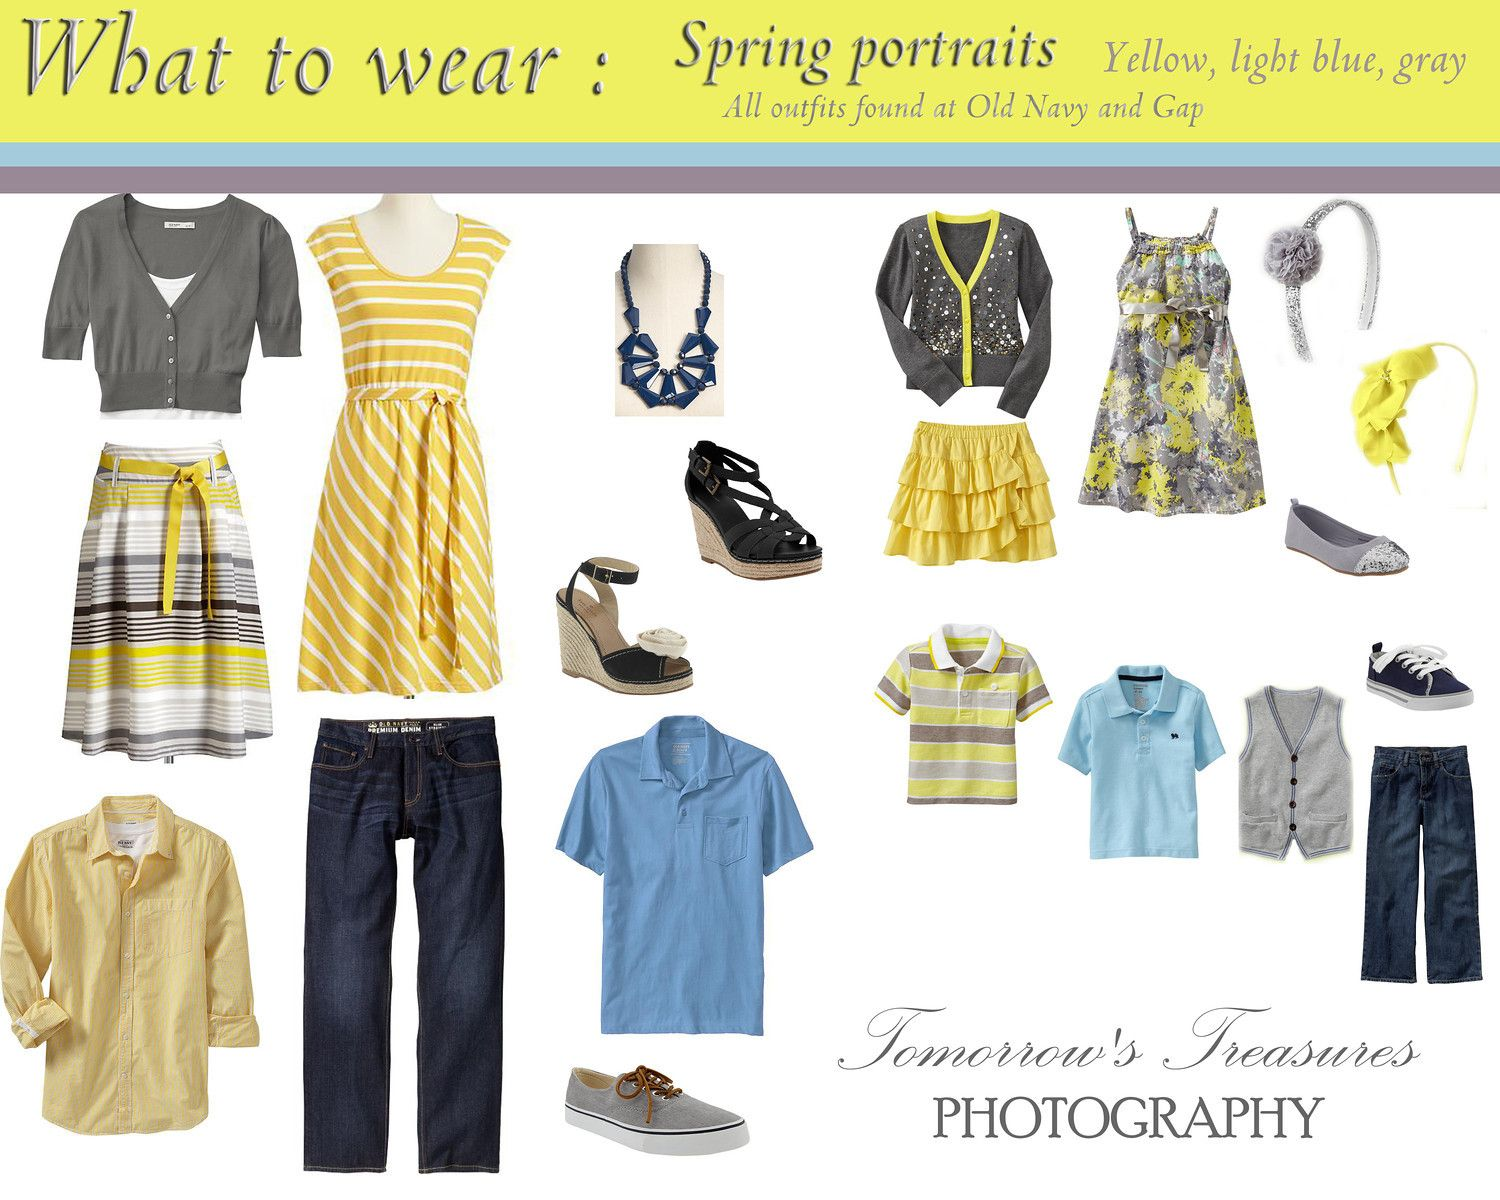 166 best What to wear for Portraits images on Pinterest | Family ...